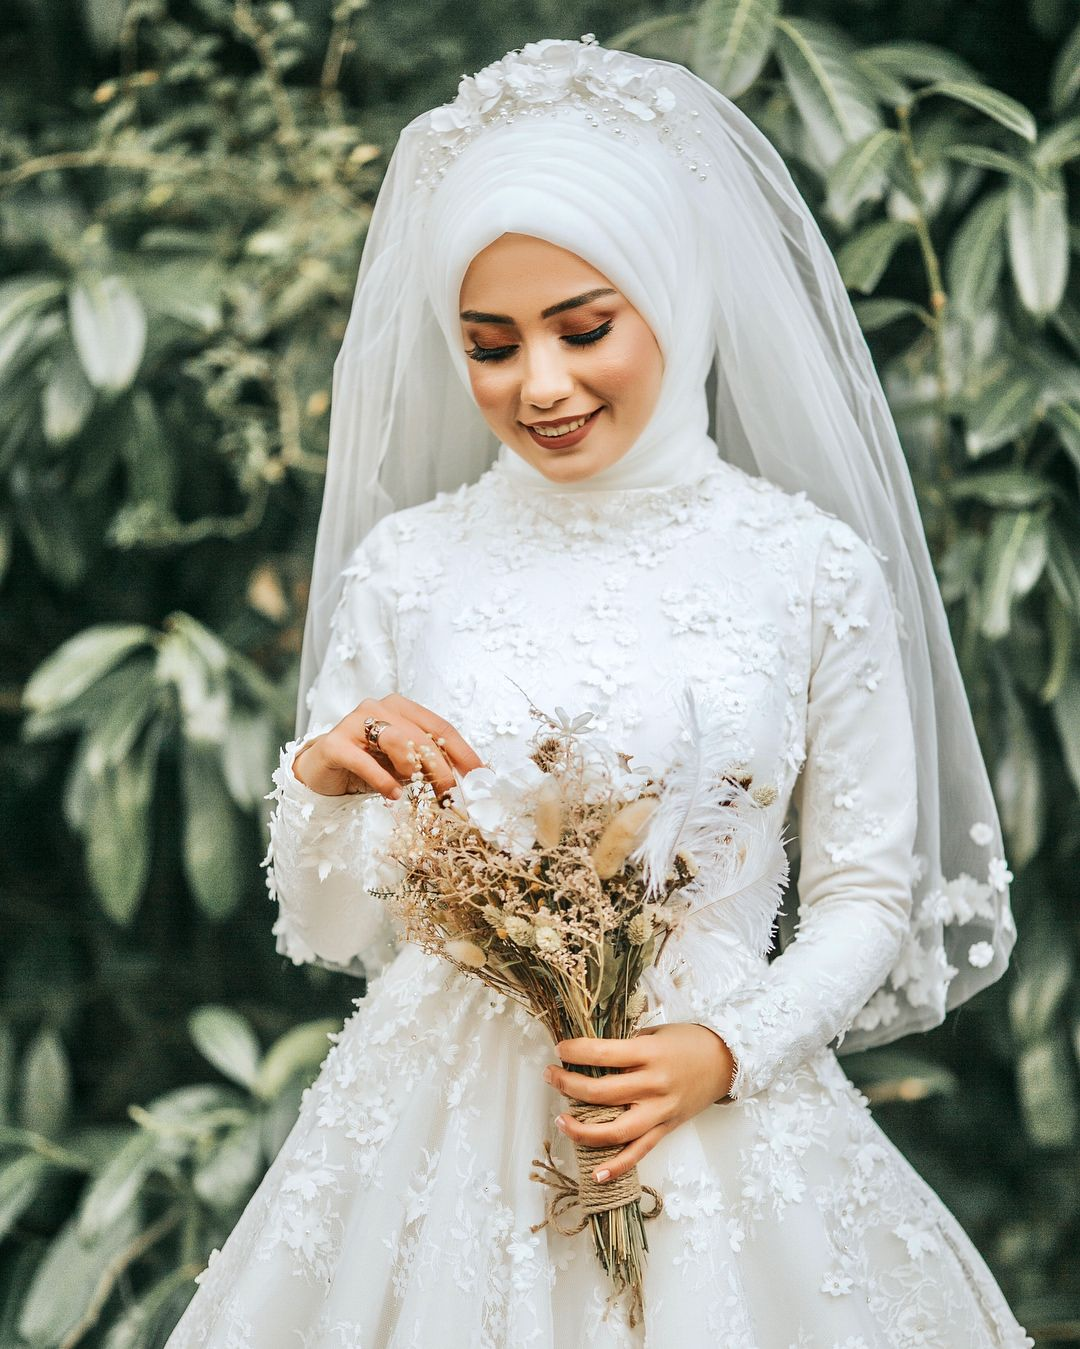 Sadelik Zarafet Muslim Wedding Dresses Fairytale Bridal Hijabi Wedding